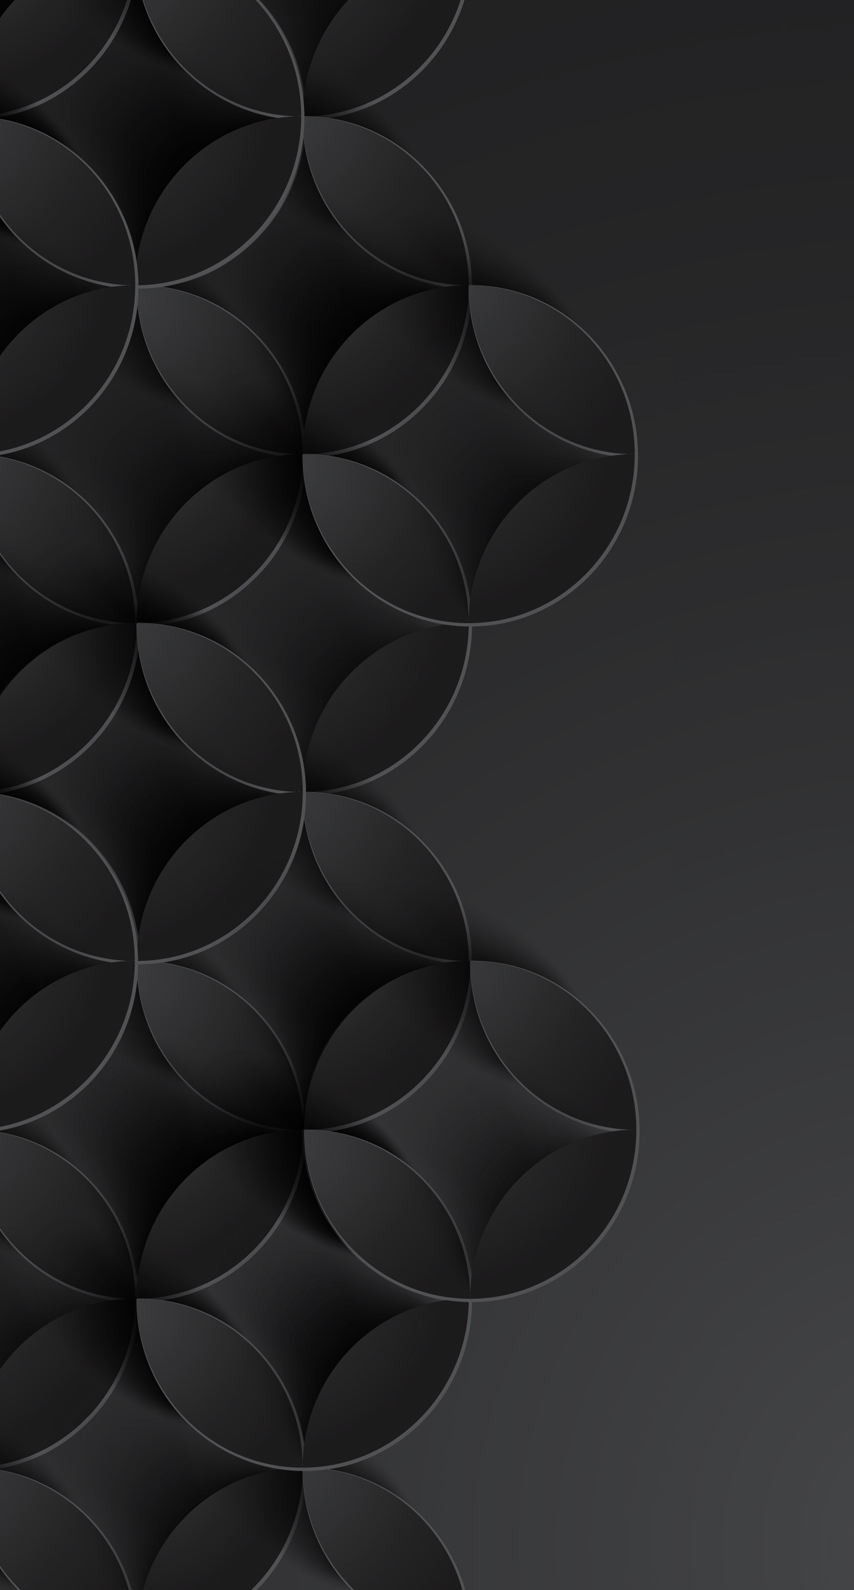 Dark Abstract background Abstract iphone wallpaper